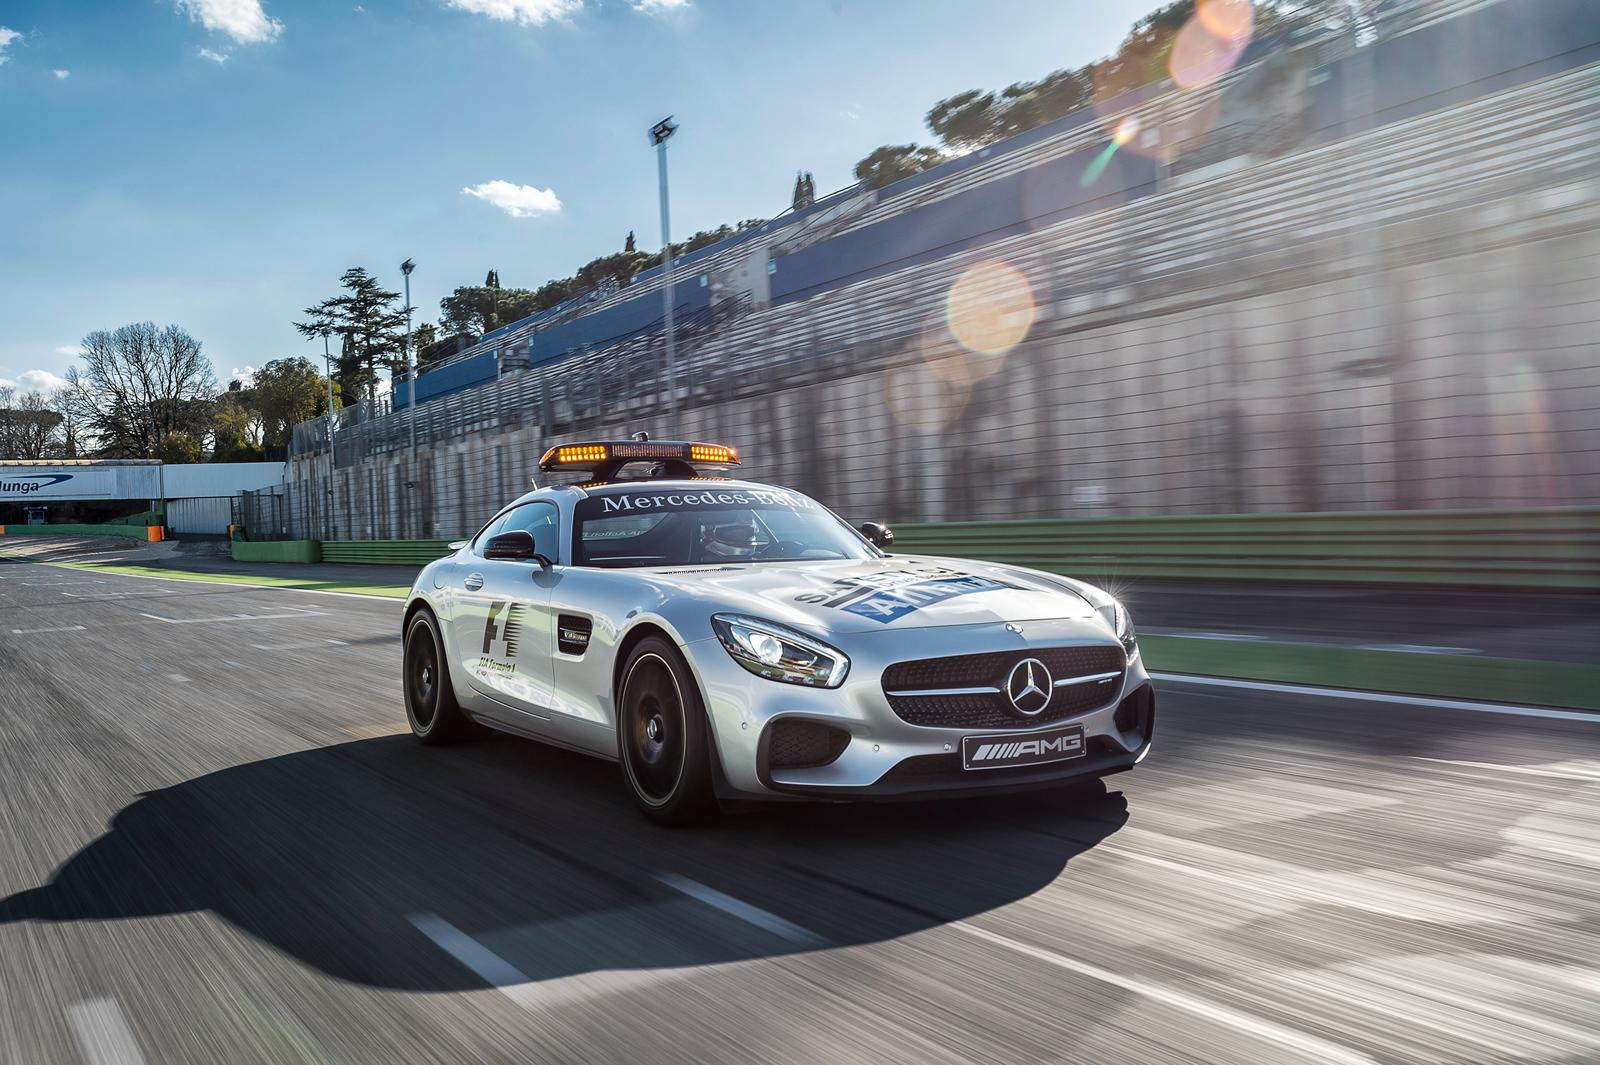 mercedes amg gt s f1 safety car and c63 s medical car. Black Bedroom Furniture Sets. Home Design Ideas